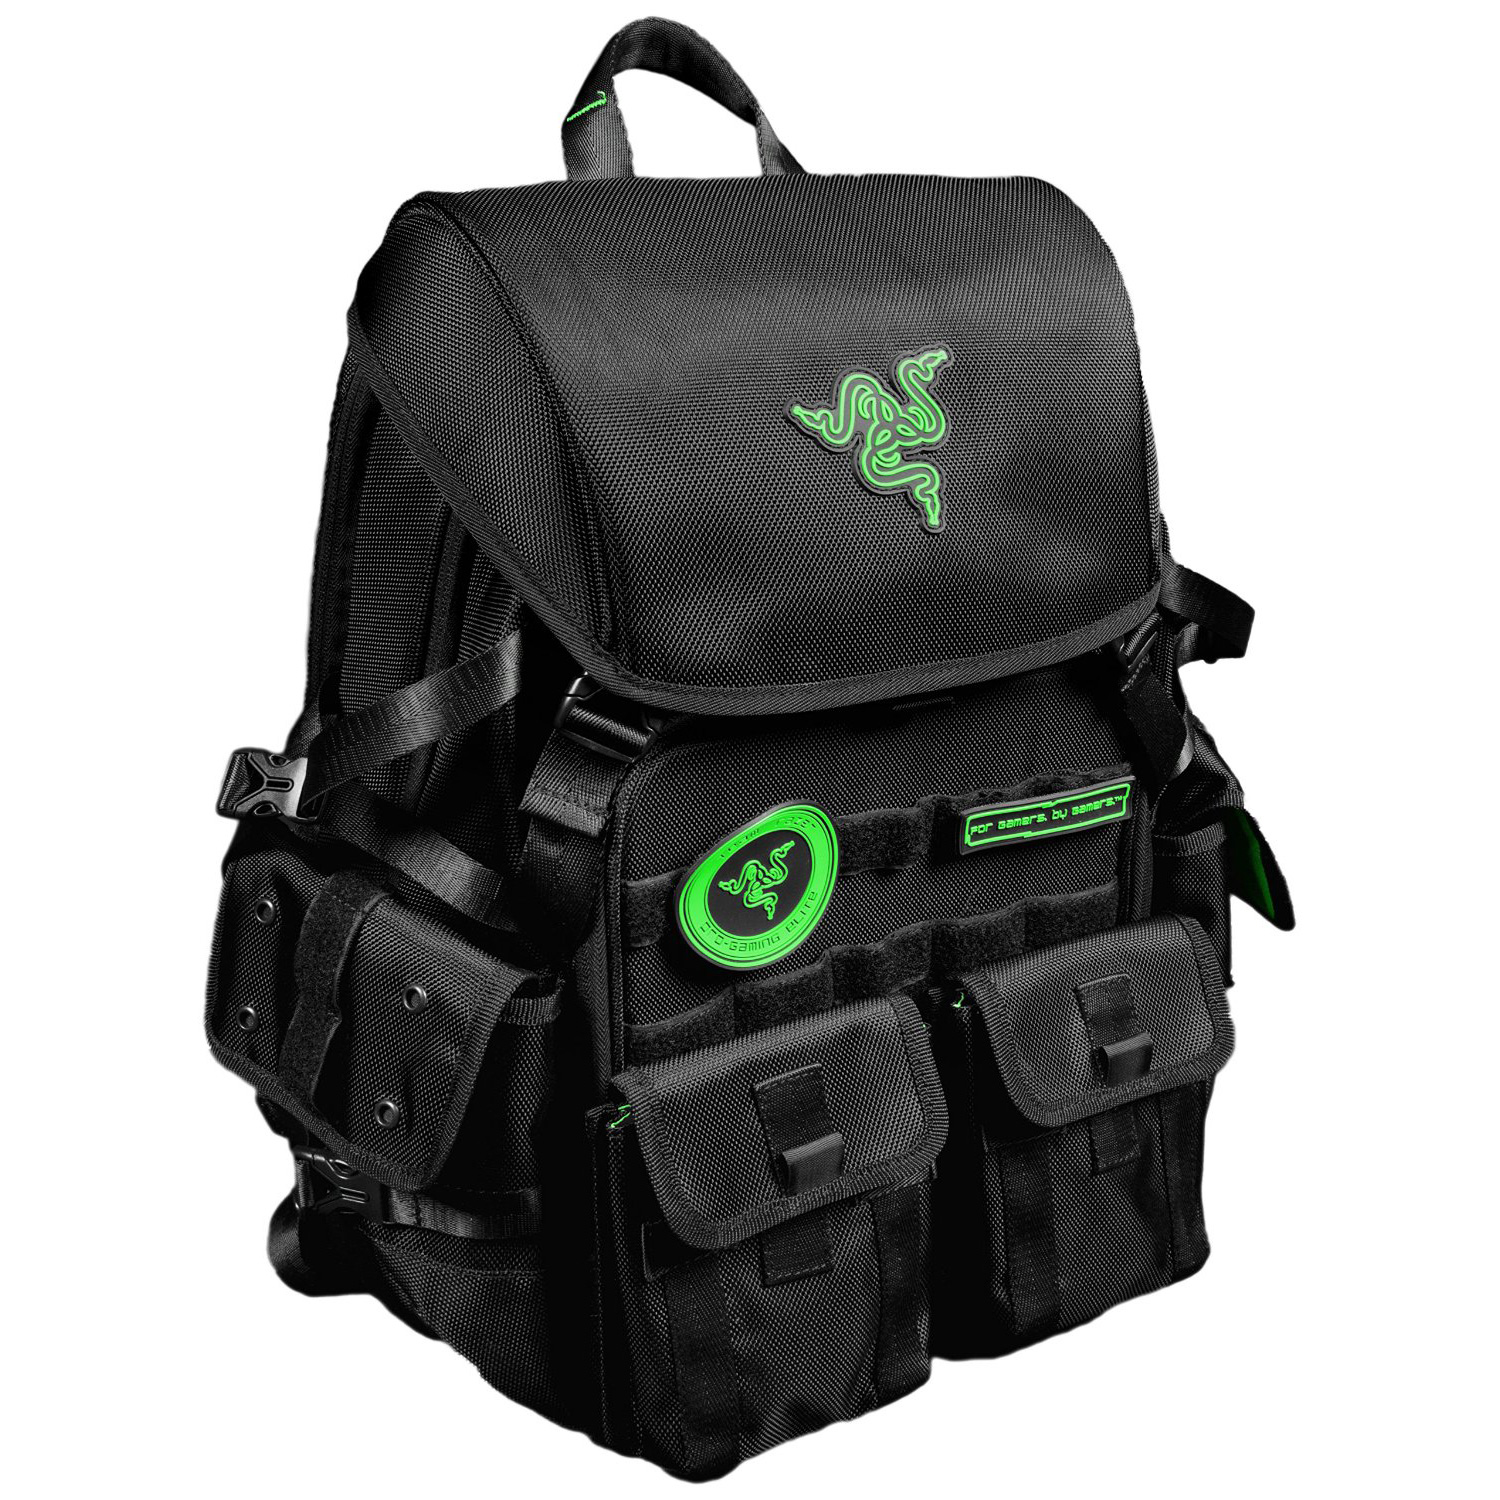 razer tactical pro backpack sac sacoche housse razer. Black Bedroom Furniture Sets. Home Design Ideas